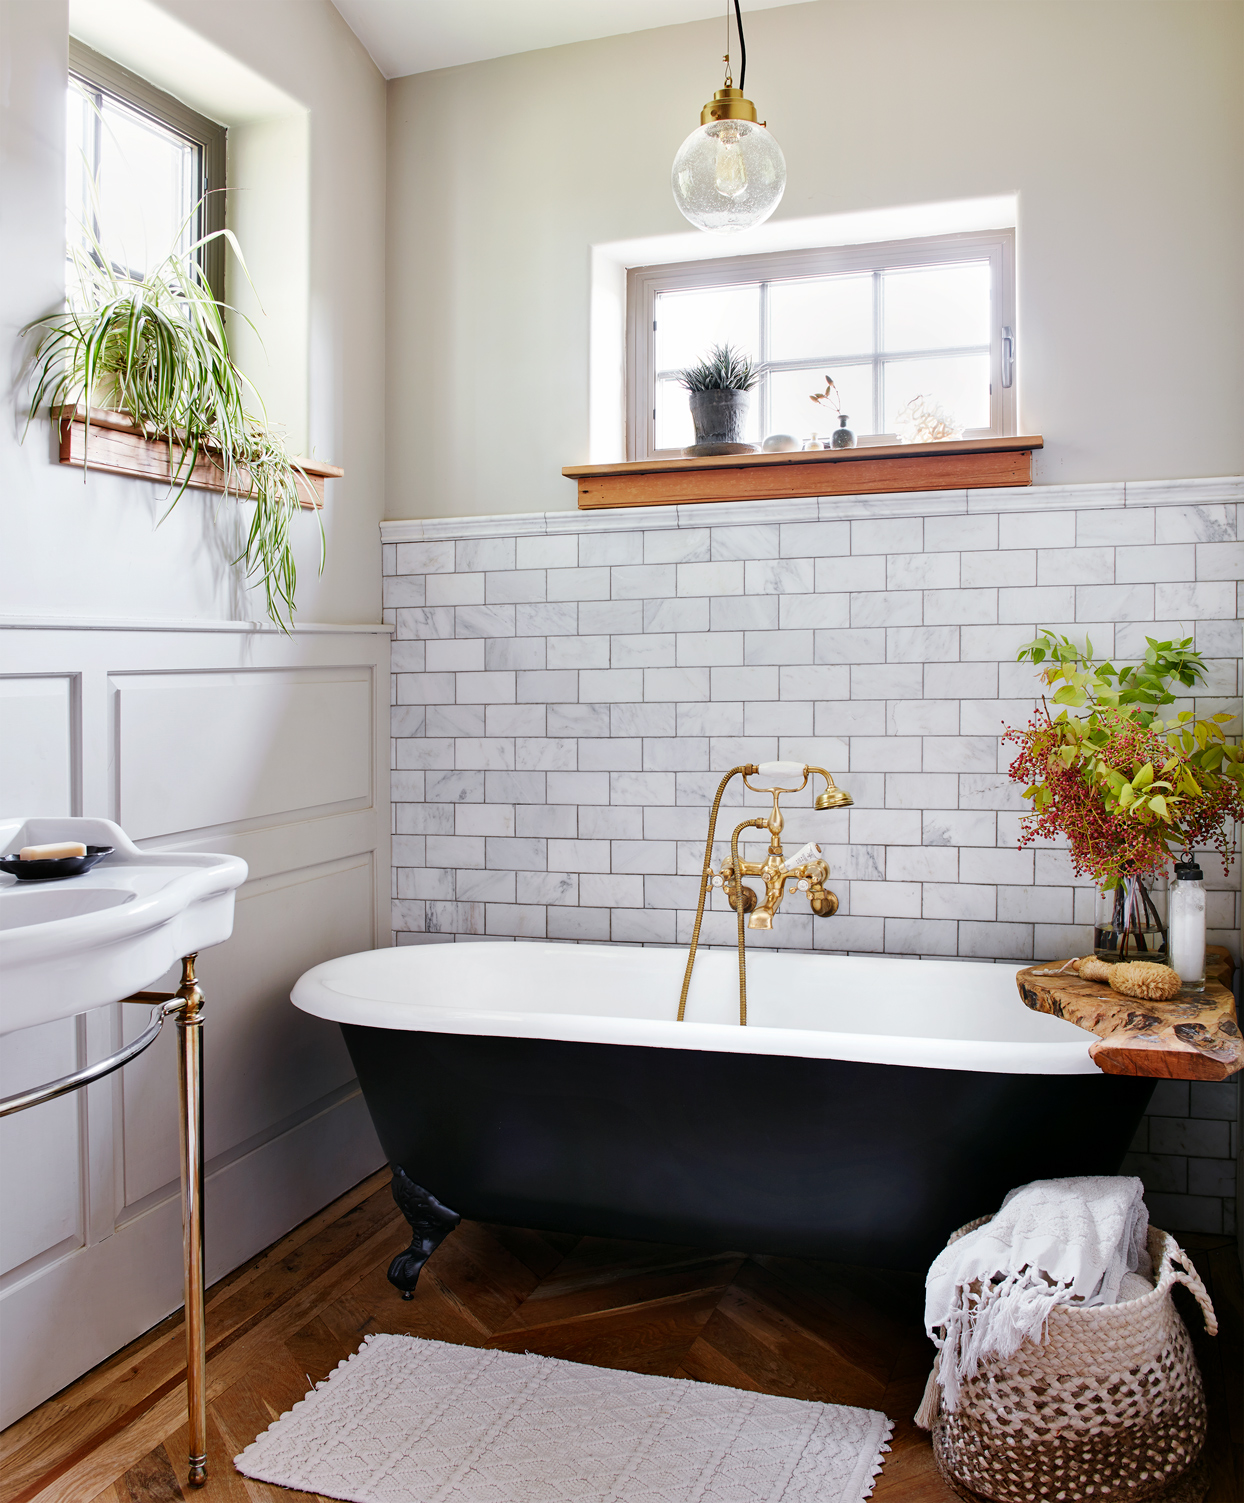 the modern bathroom decorated with plants